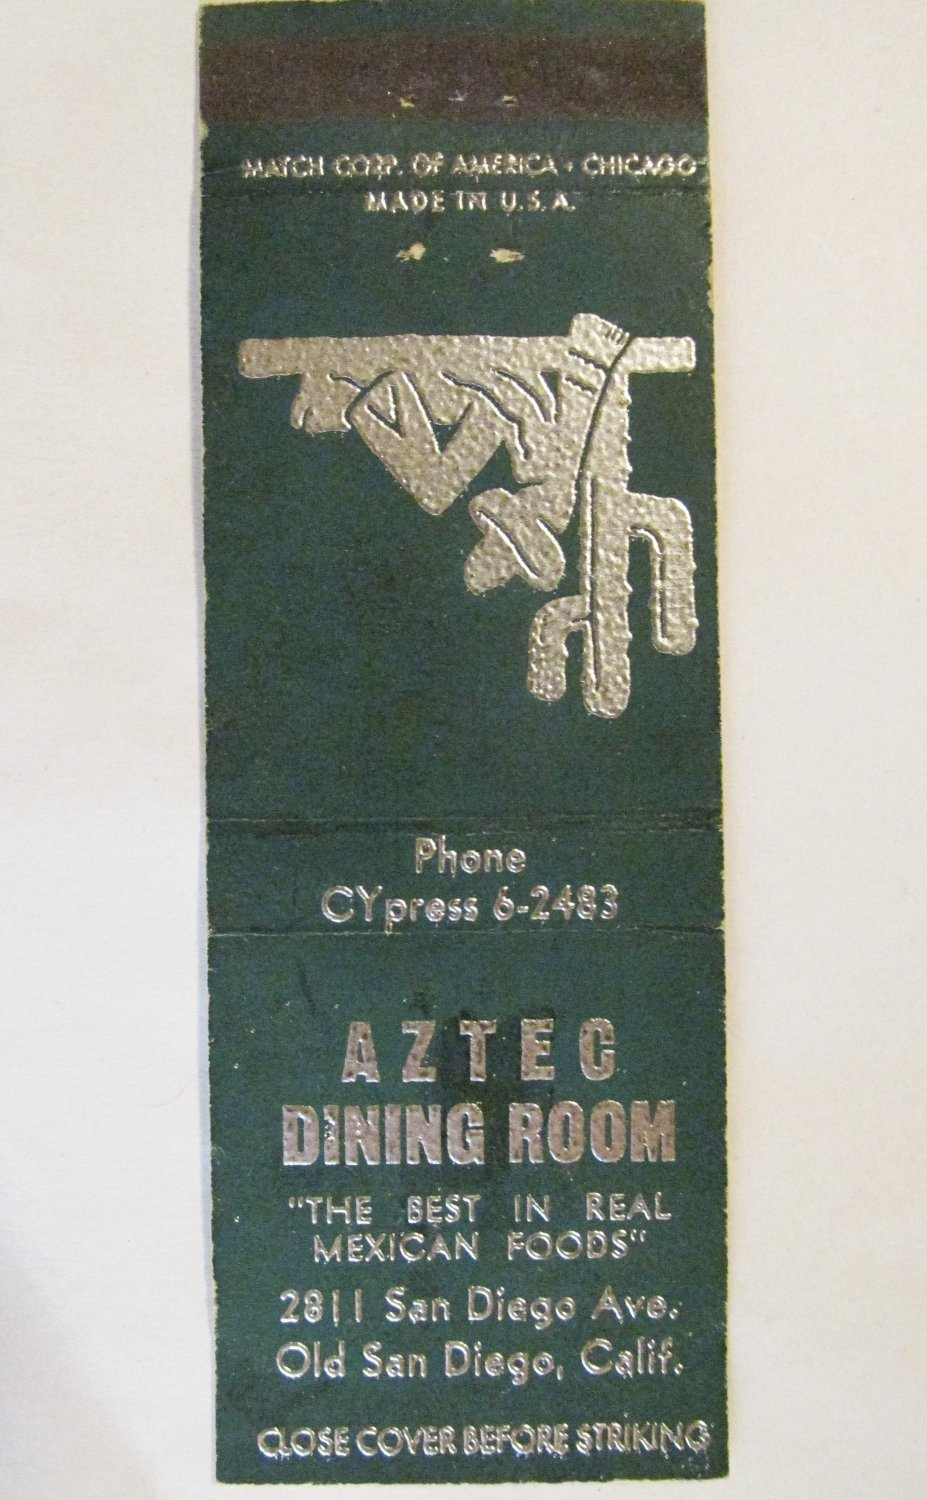 Aztec Dining Room Old San Diego, California Restaurant 20 Strike Matchbook Cover